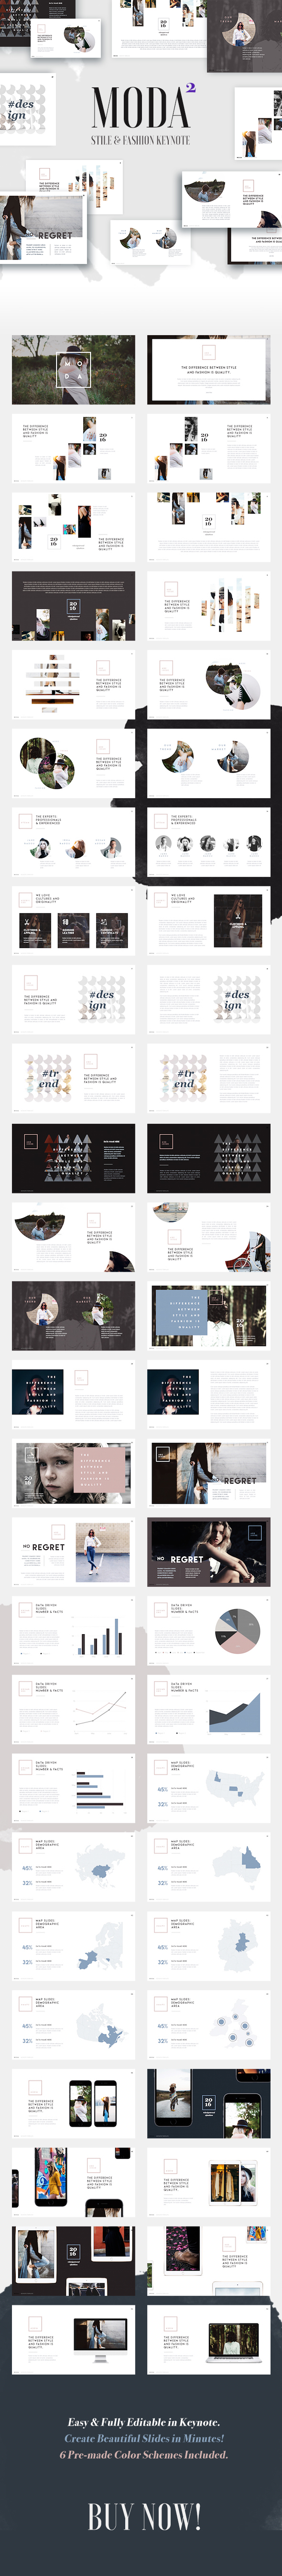 Moda 2 - Fashion & Style Keynote Template - Keynote Templates Presentation Templates